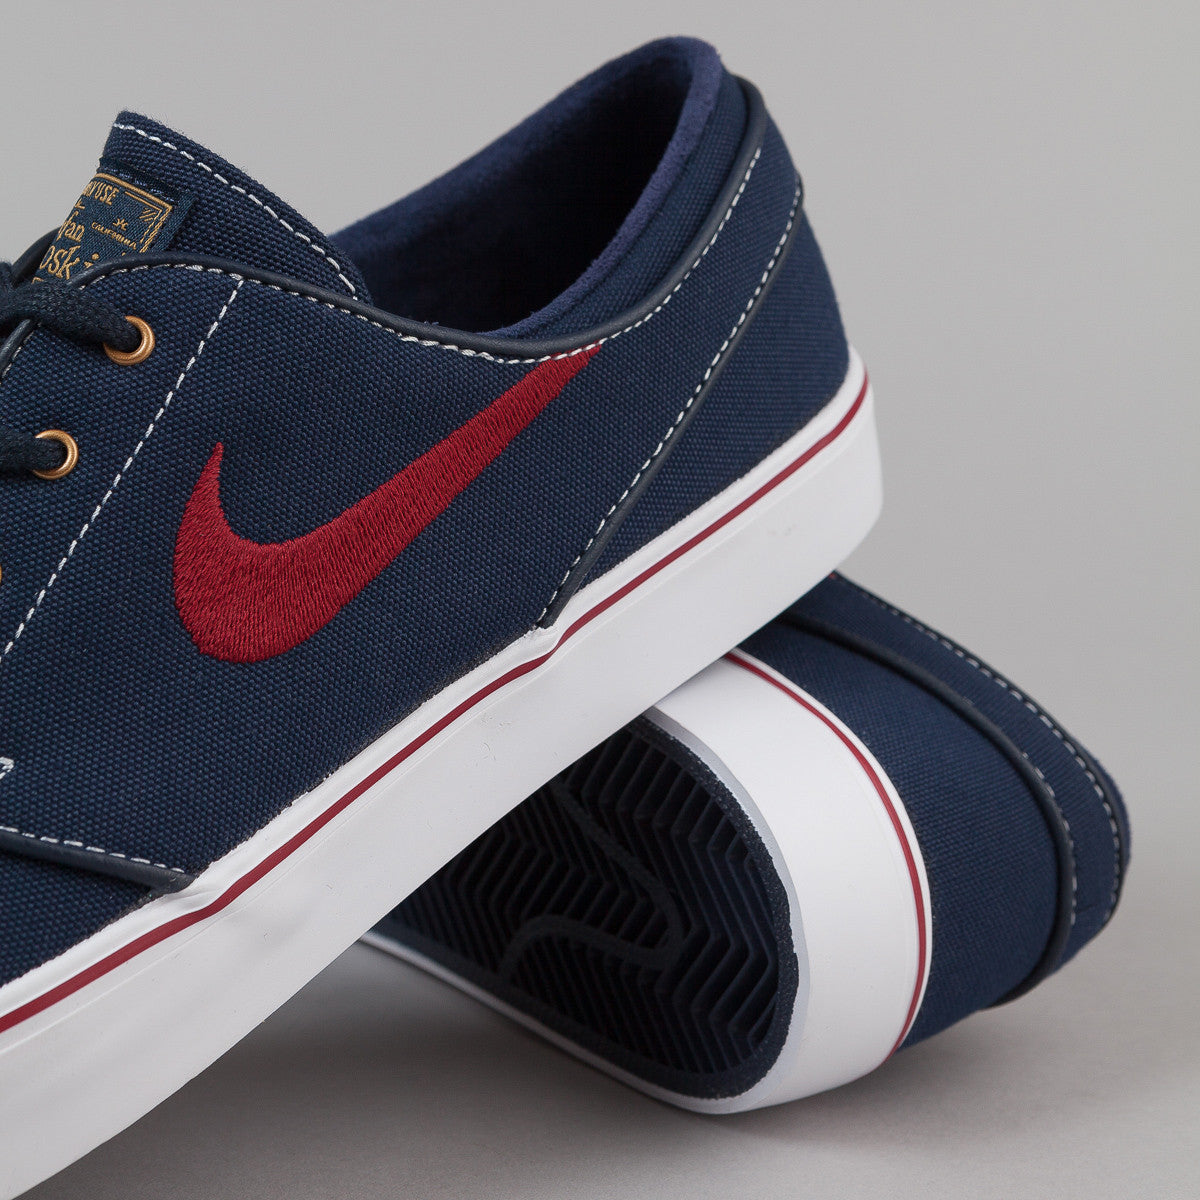 Nike SB Stefan Janoski Shoes - Obsidian / White / Metallic Gold / Team Red